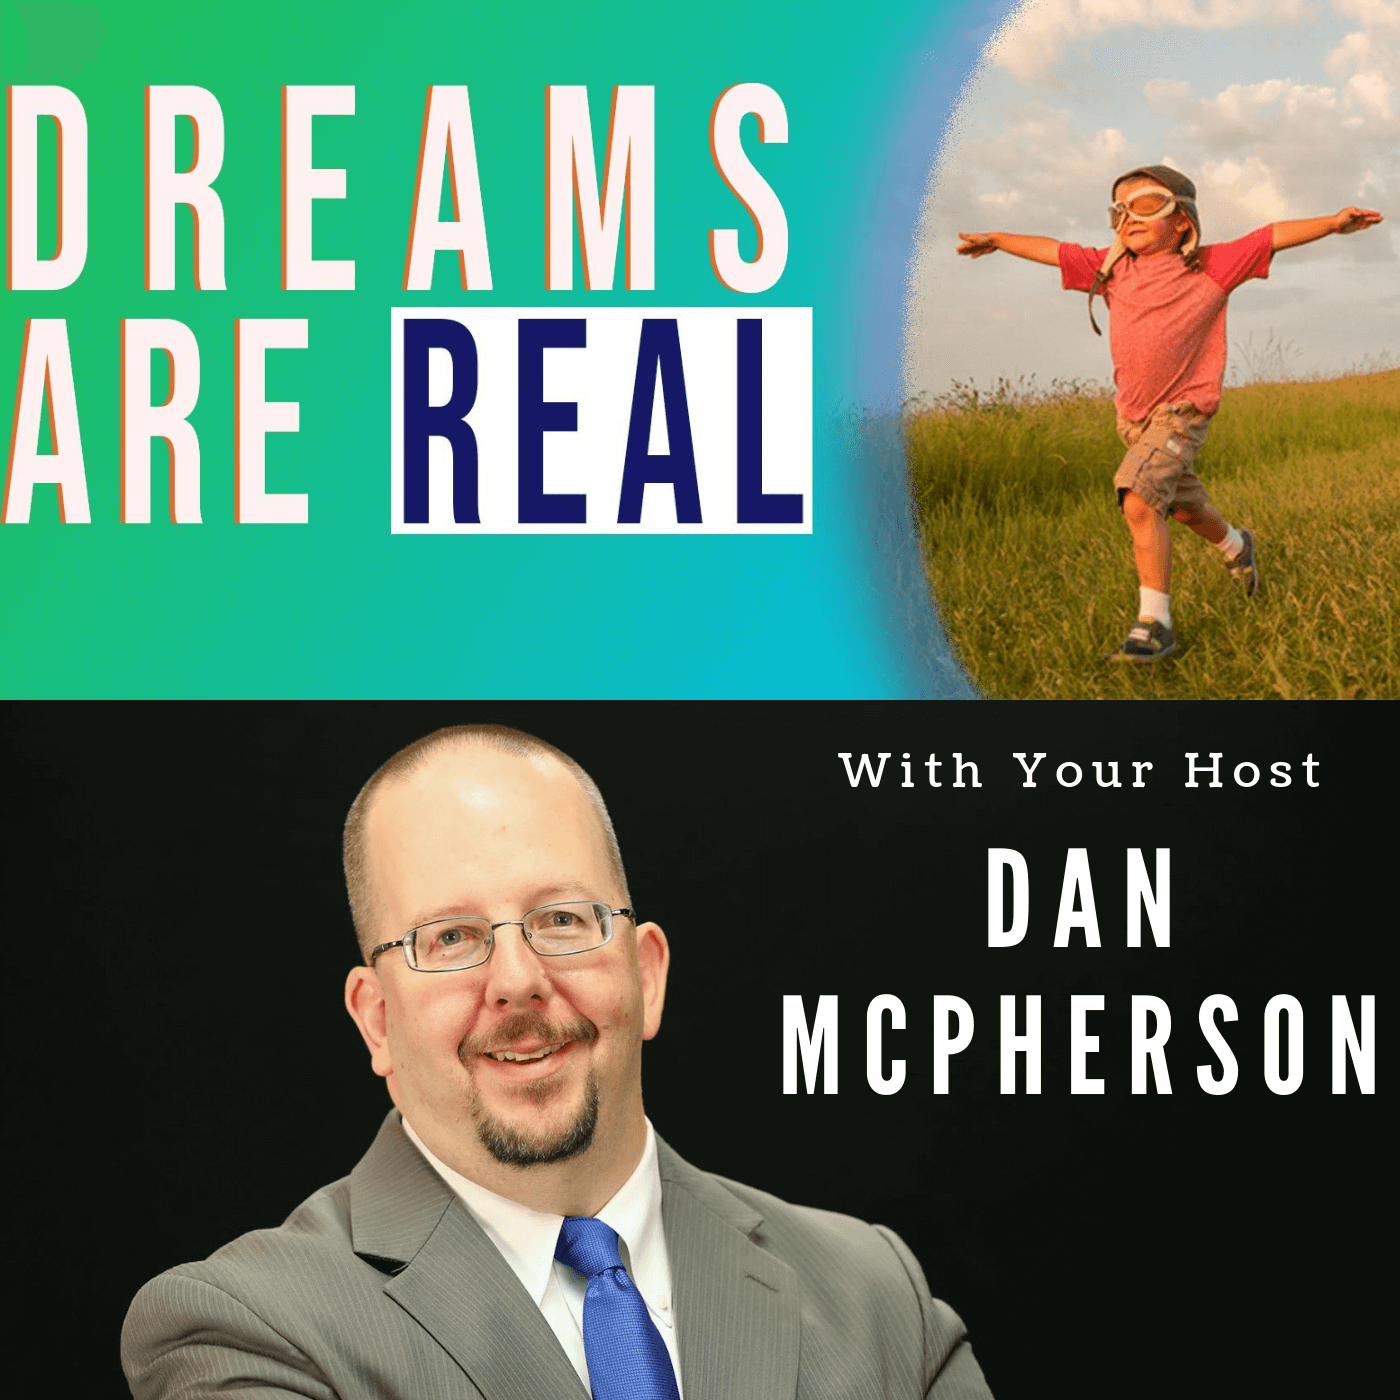 Ep 125: There's no substitute for real empathy and authenticity with Copywriter and Marketing Strategist Daniel Lamb